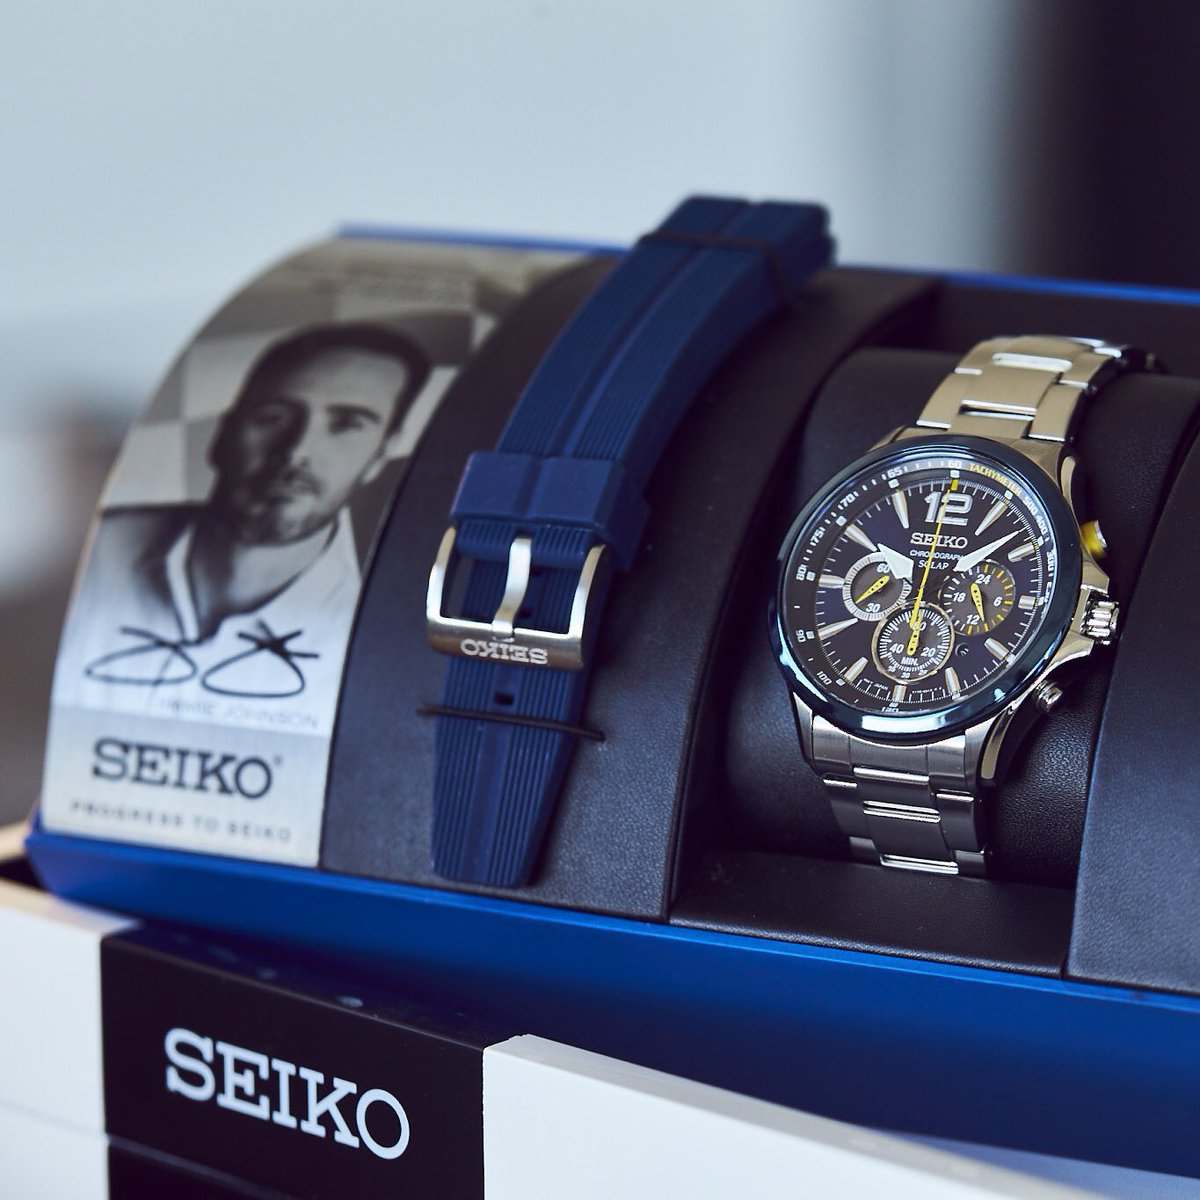 Special #jjswag thx to @seikowatches announcing my new watch. Any RT is eligible, will pick 8pmET tonight to win it! https://t.co/1jgdiSSOdx